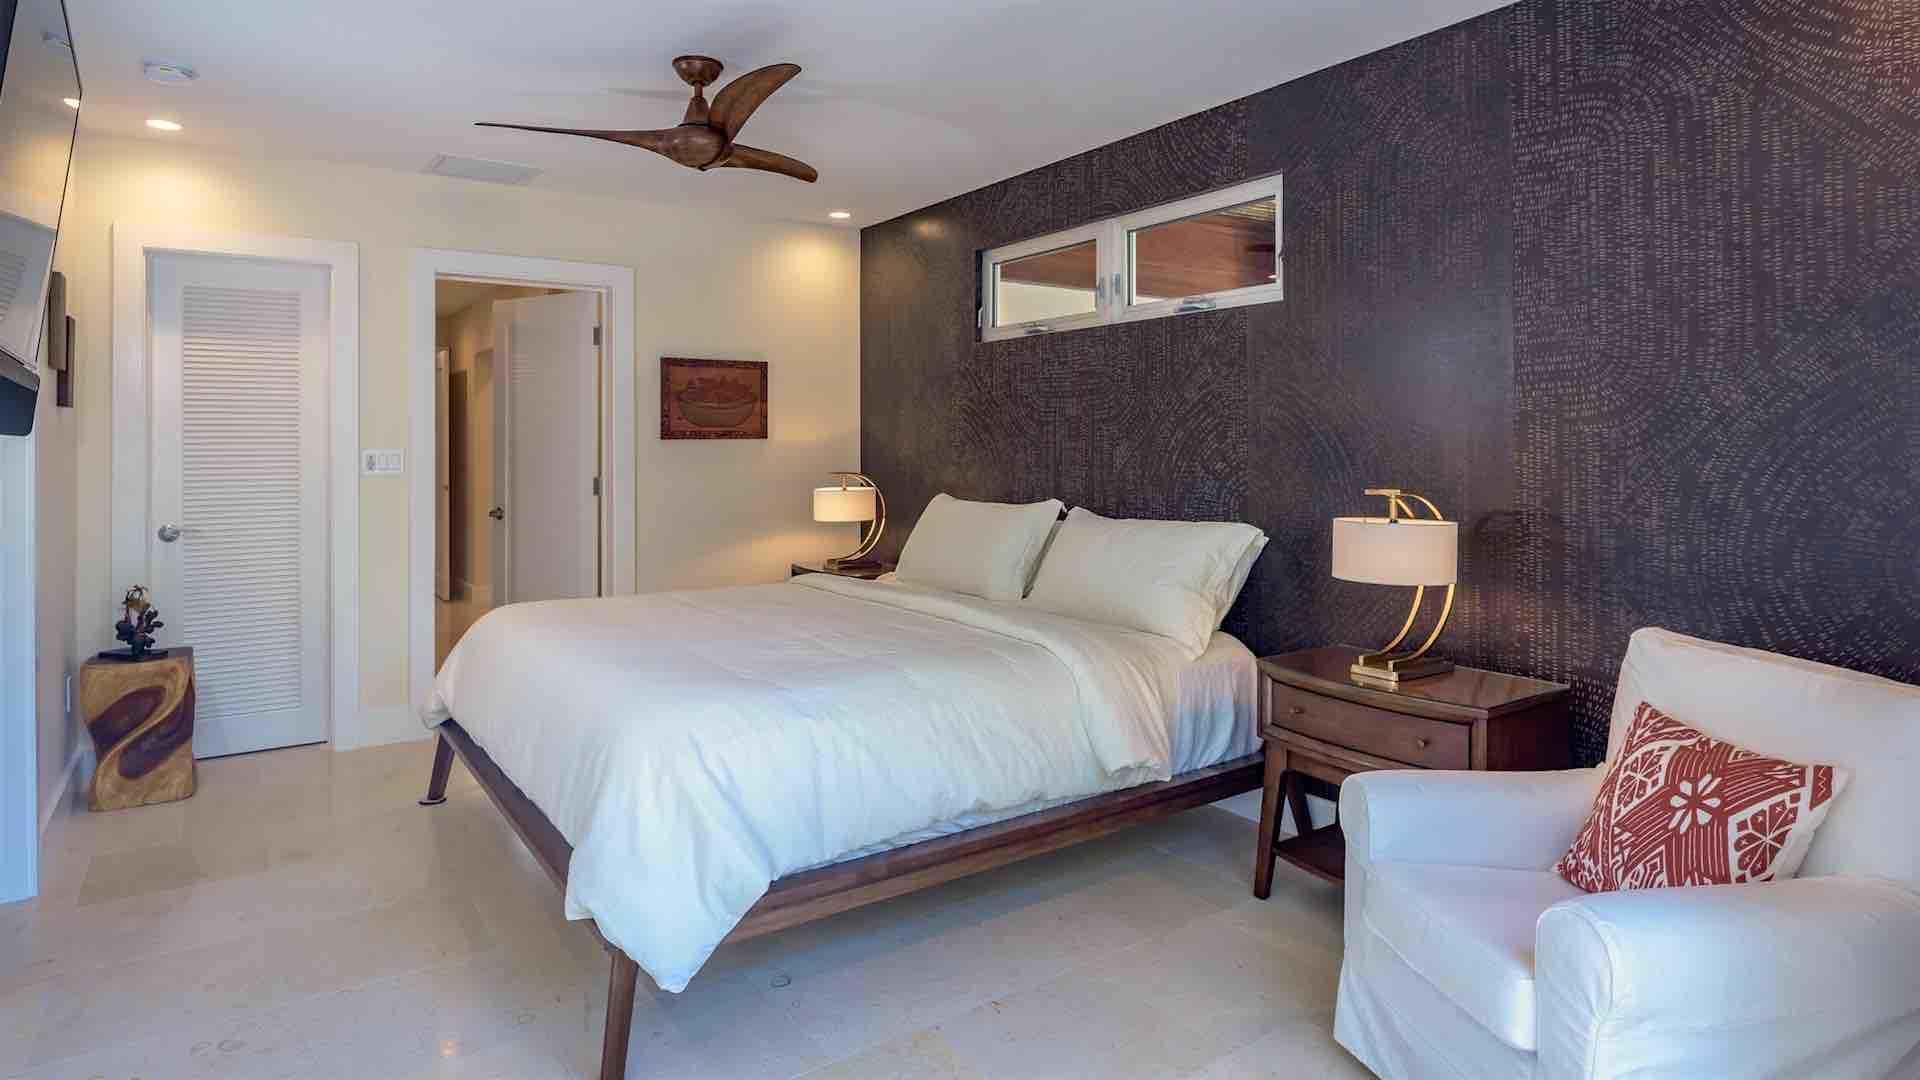 The master bedroom has a King bed, an overhead fan, and plenty of closet space...